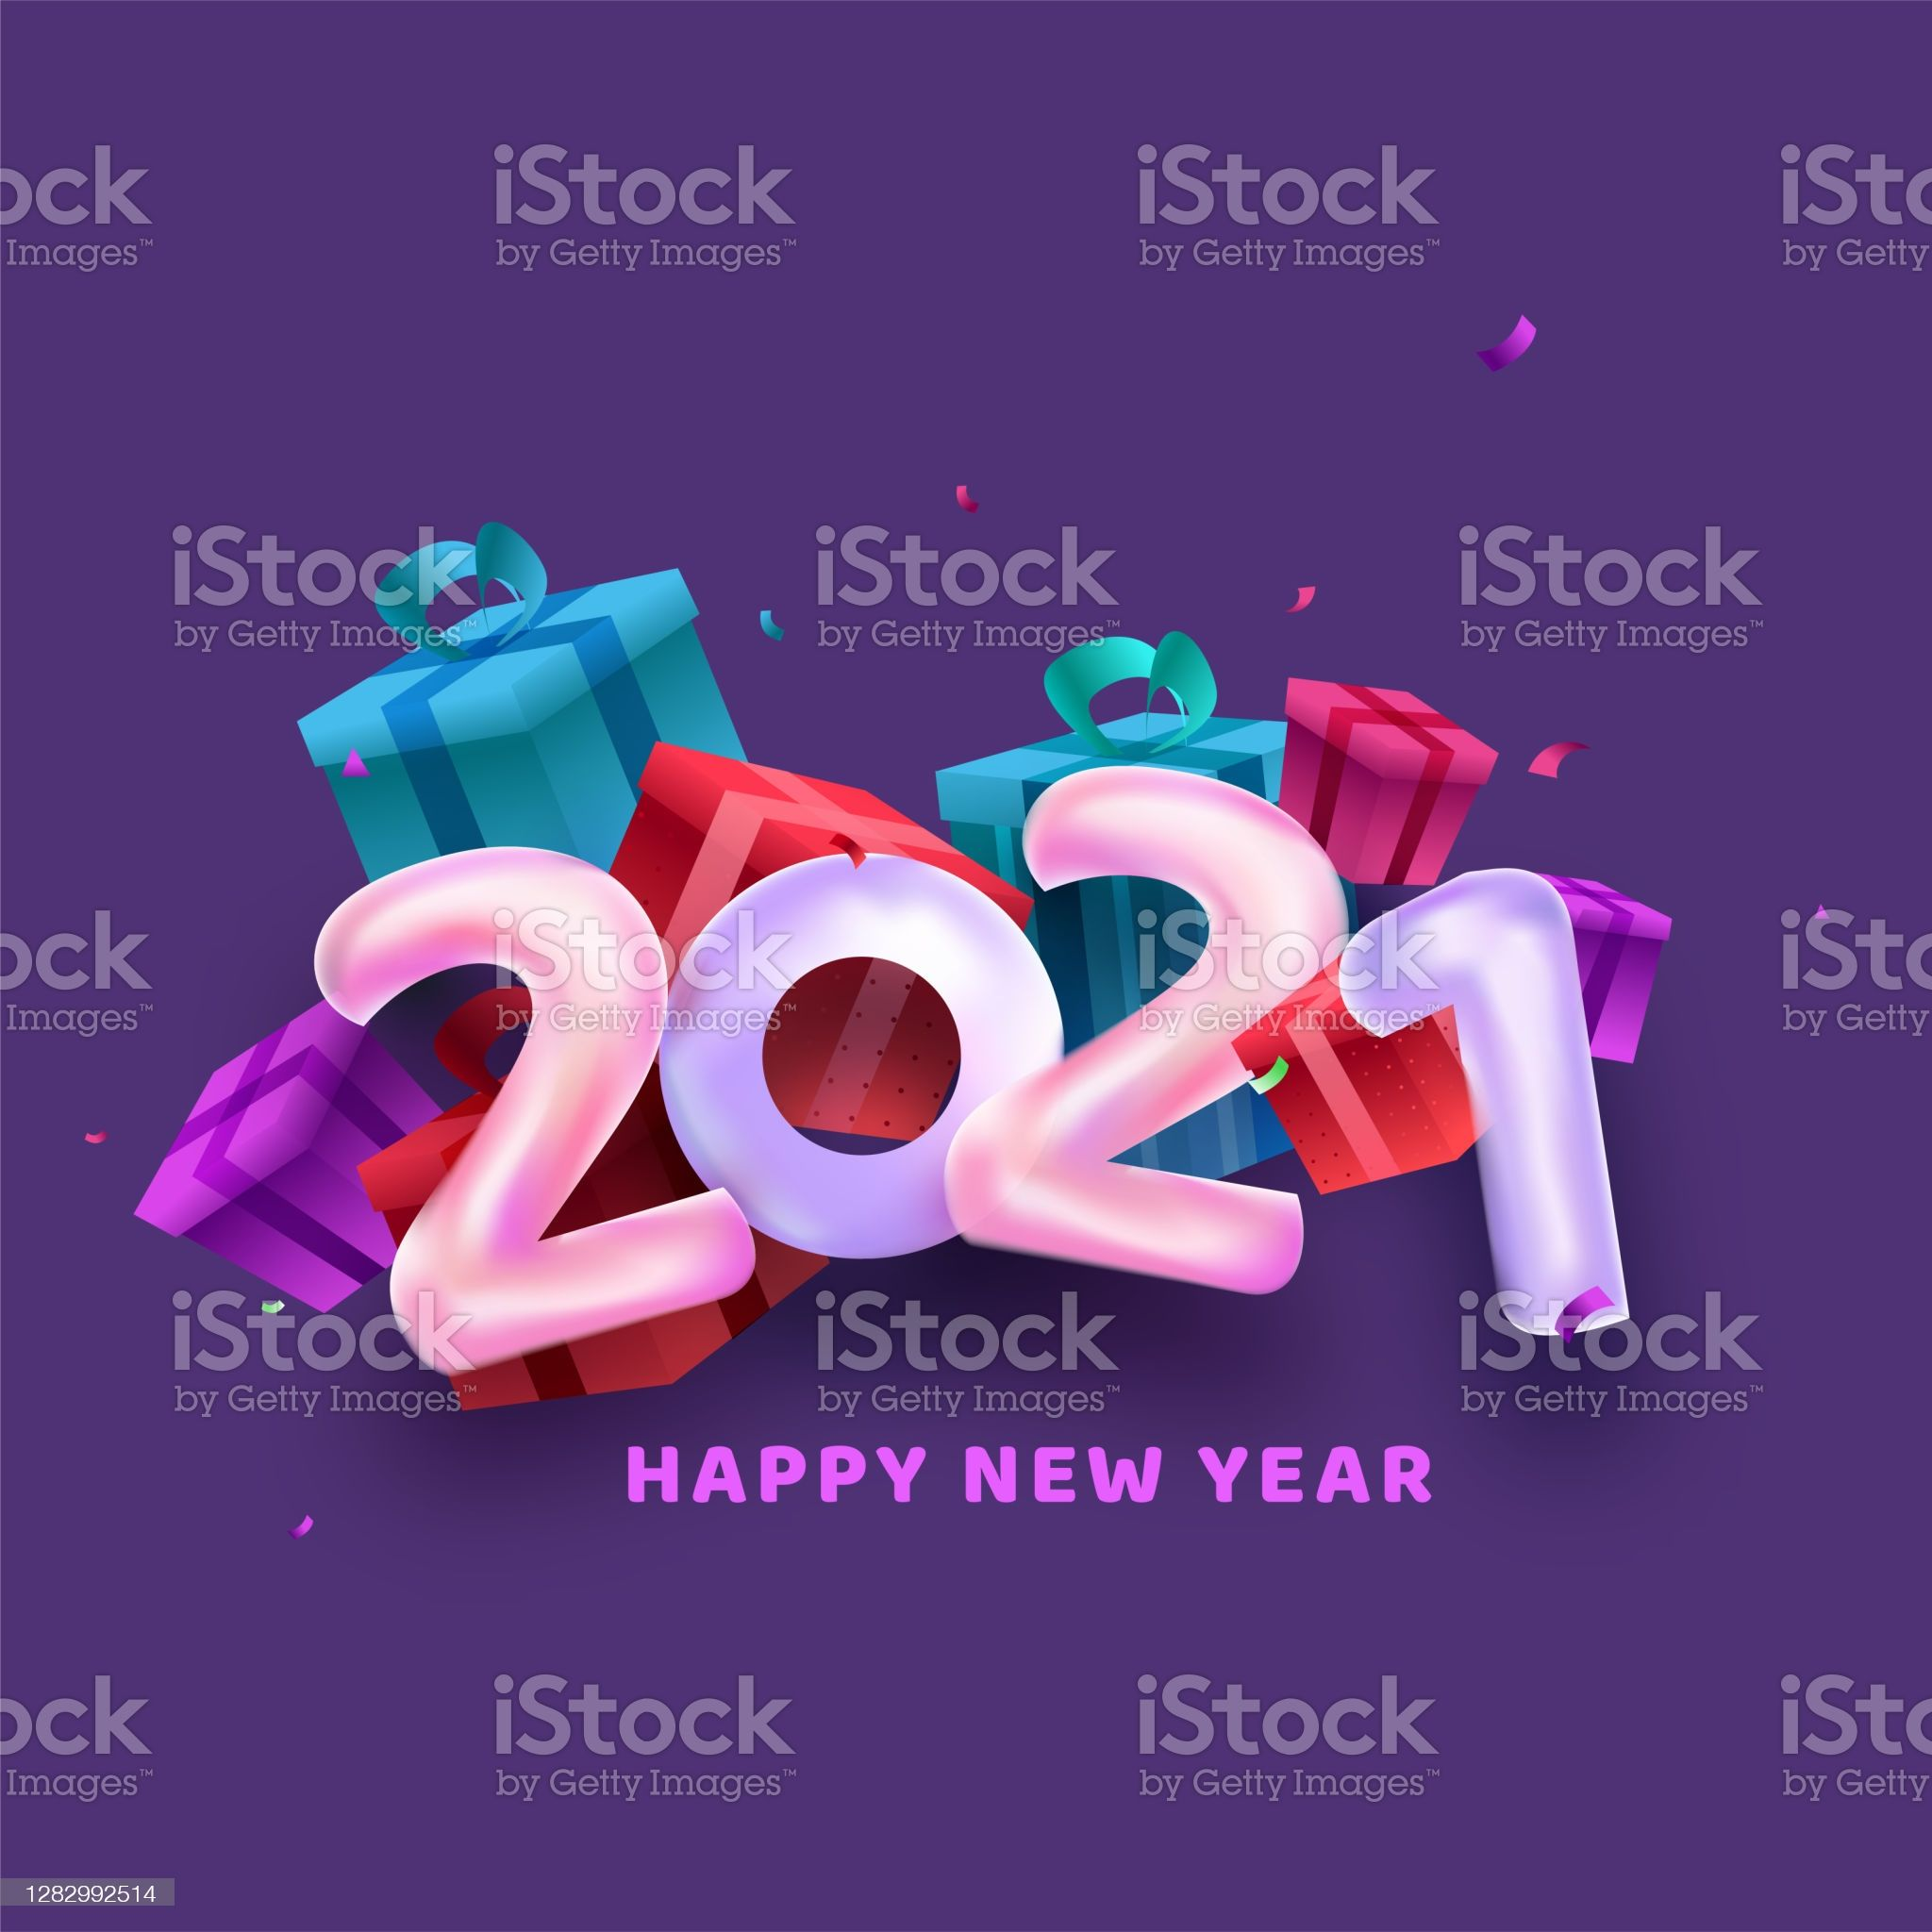 Balloon Number Of 2021 With 3d Gift Boxes On Purple Background For Number Balloons Happy New Year Vector Purple Backgrounds 2021 new year balloons and gift